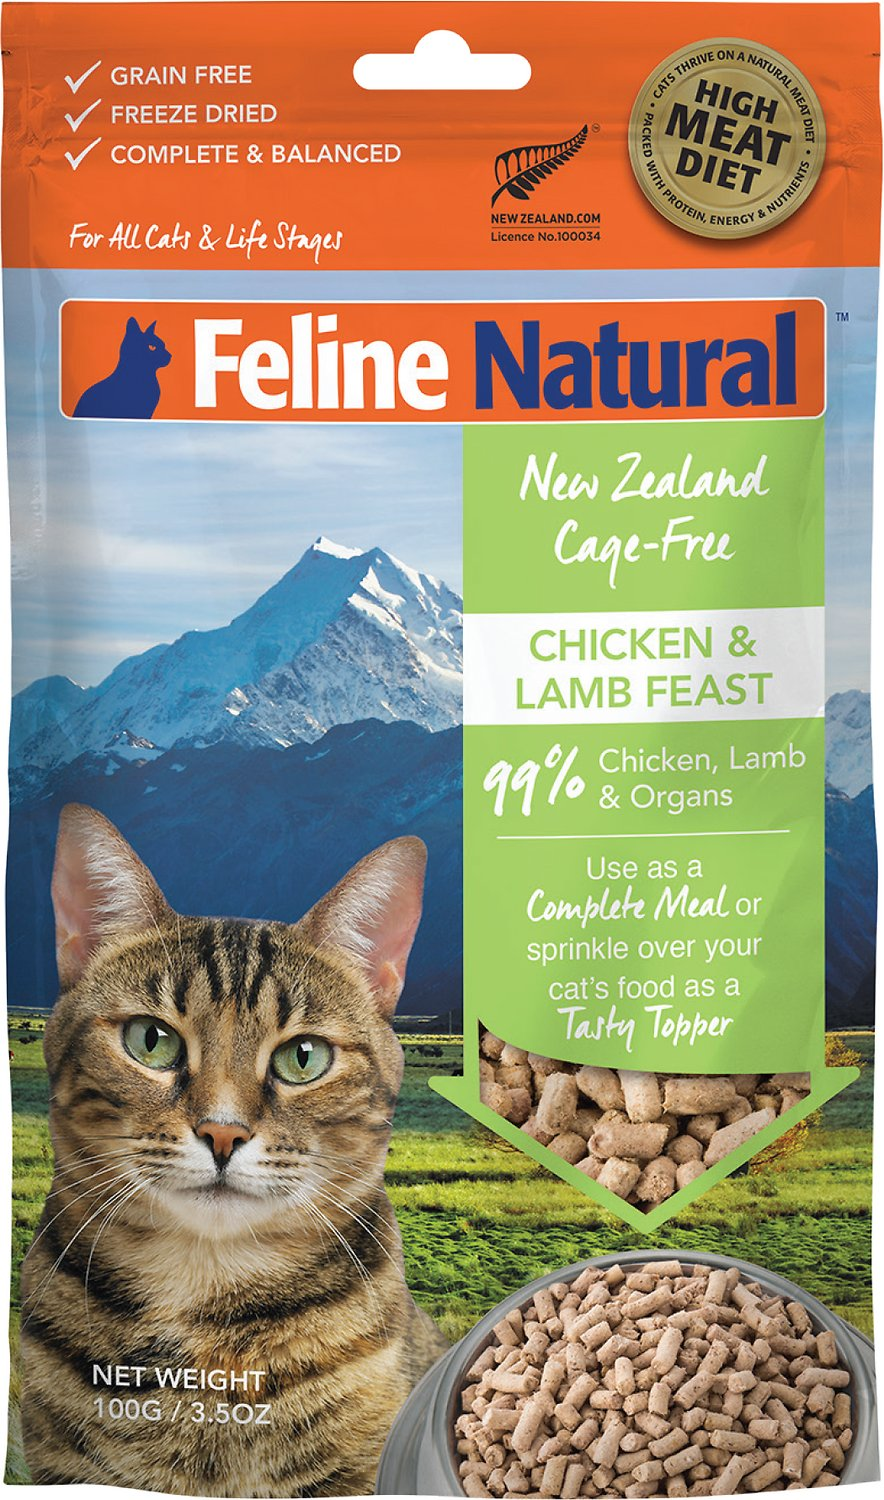 Feline Natural Chicken & Lamb Feast Grain-Free Freeze-Dried Cat Food & Topper, 3.5-oz